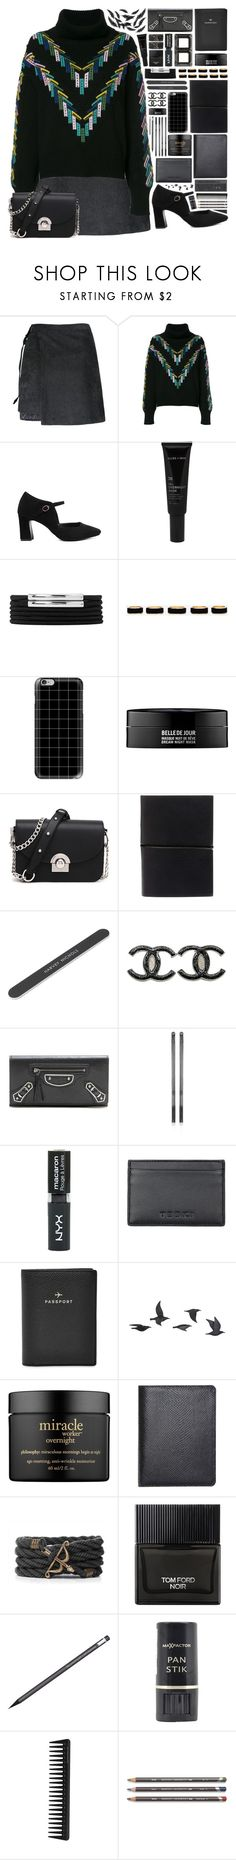 """""""👗Classy Fashion!"""" by ritaof ❤ liked on Polyvore featuring Barrie, Allies of Skin, Forever 21, Casetify, Kenzoki, Chanel, Balenciaga, Jack Vartanian, Topshop and FOSSIL"""